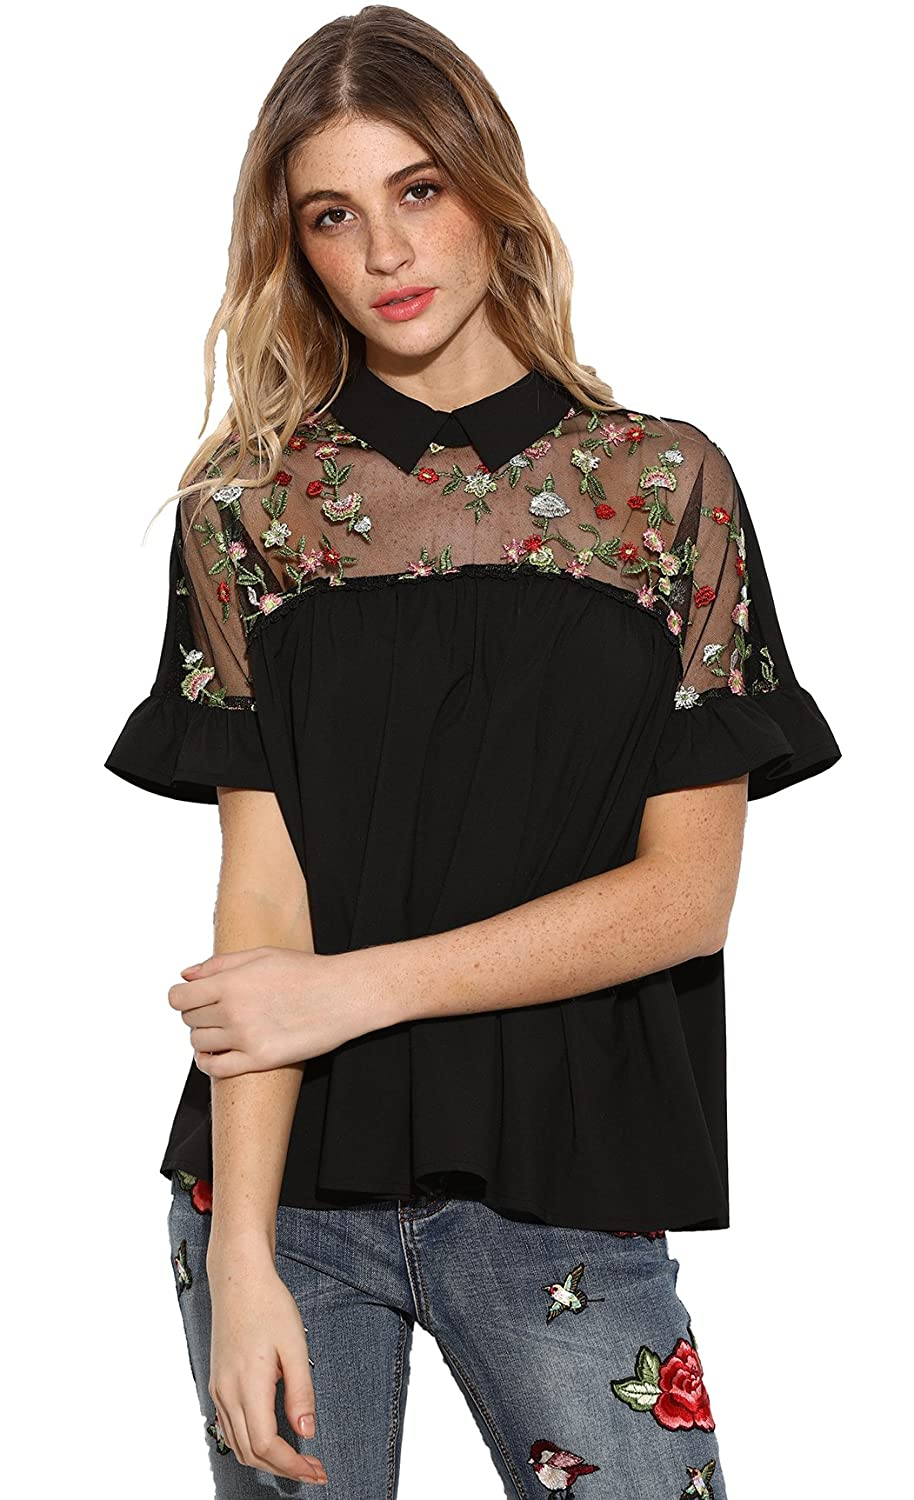 7bf5929b40 Sheer neck,collared,embroidered,back bow tie,and ruffle cuff blouse. Cute  and stylish,great for pairing it with jeans or skinny pants